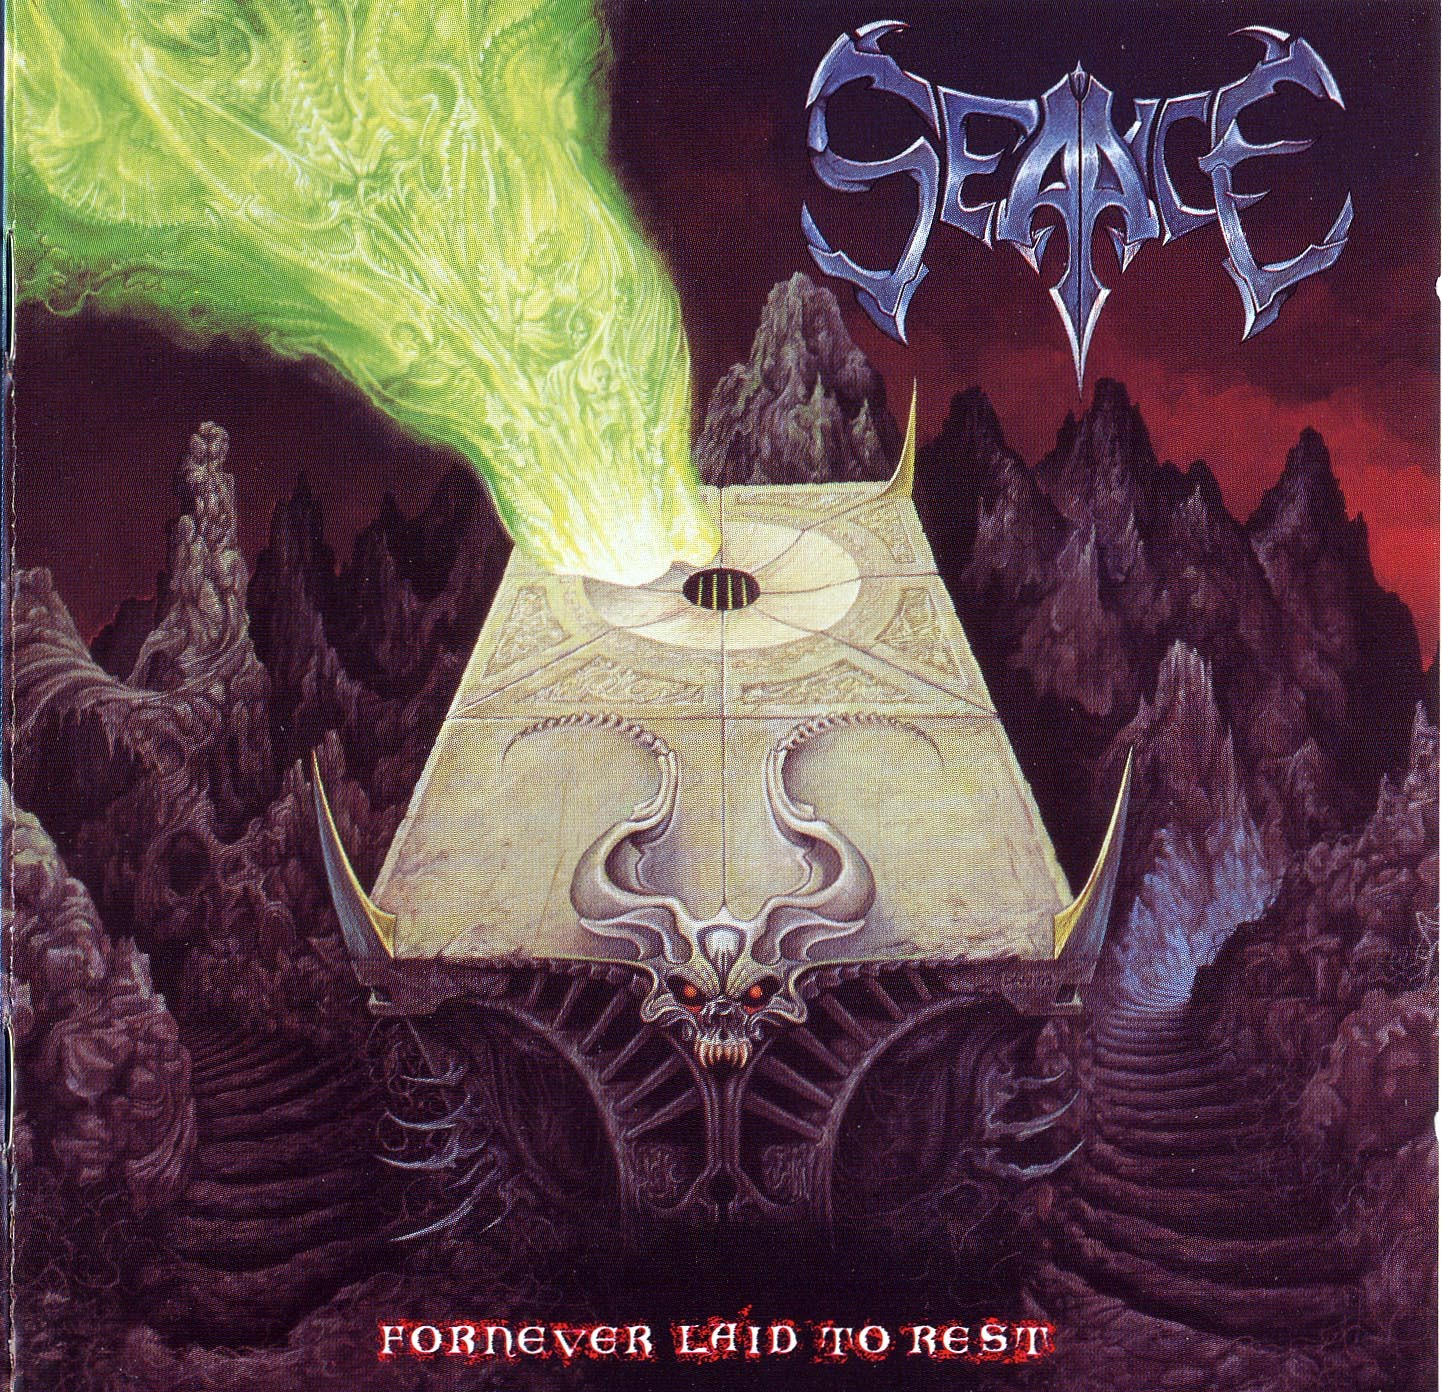 Seance - Fornever Laid To Rest - 1992